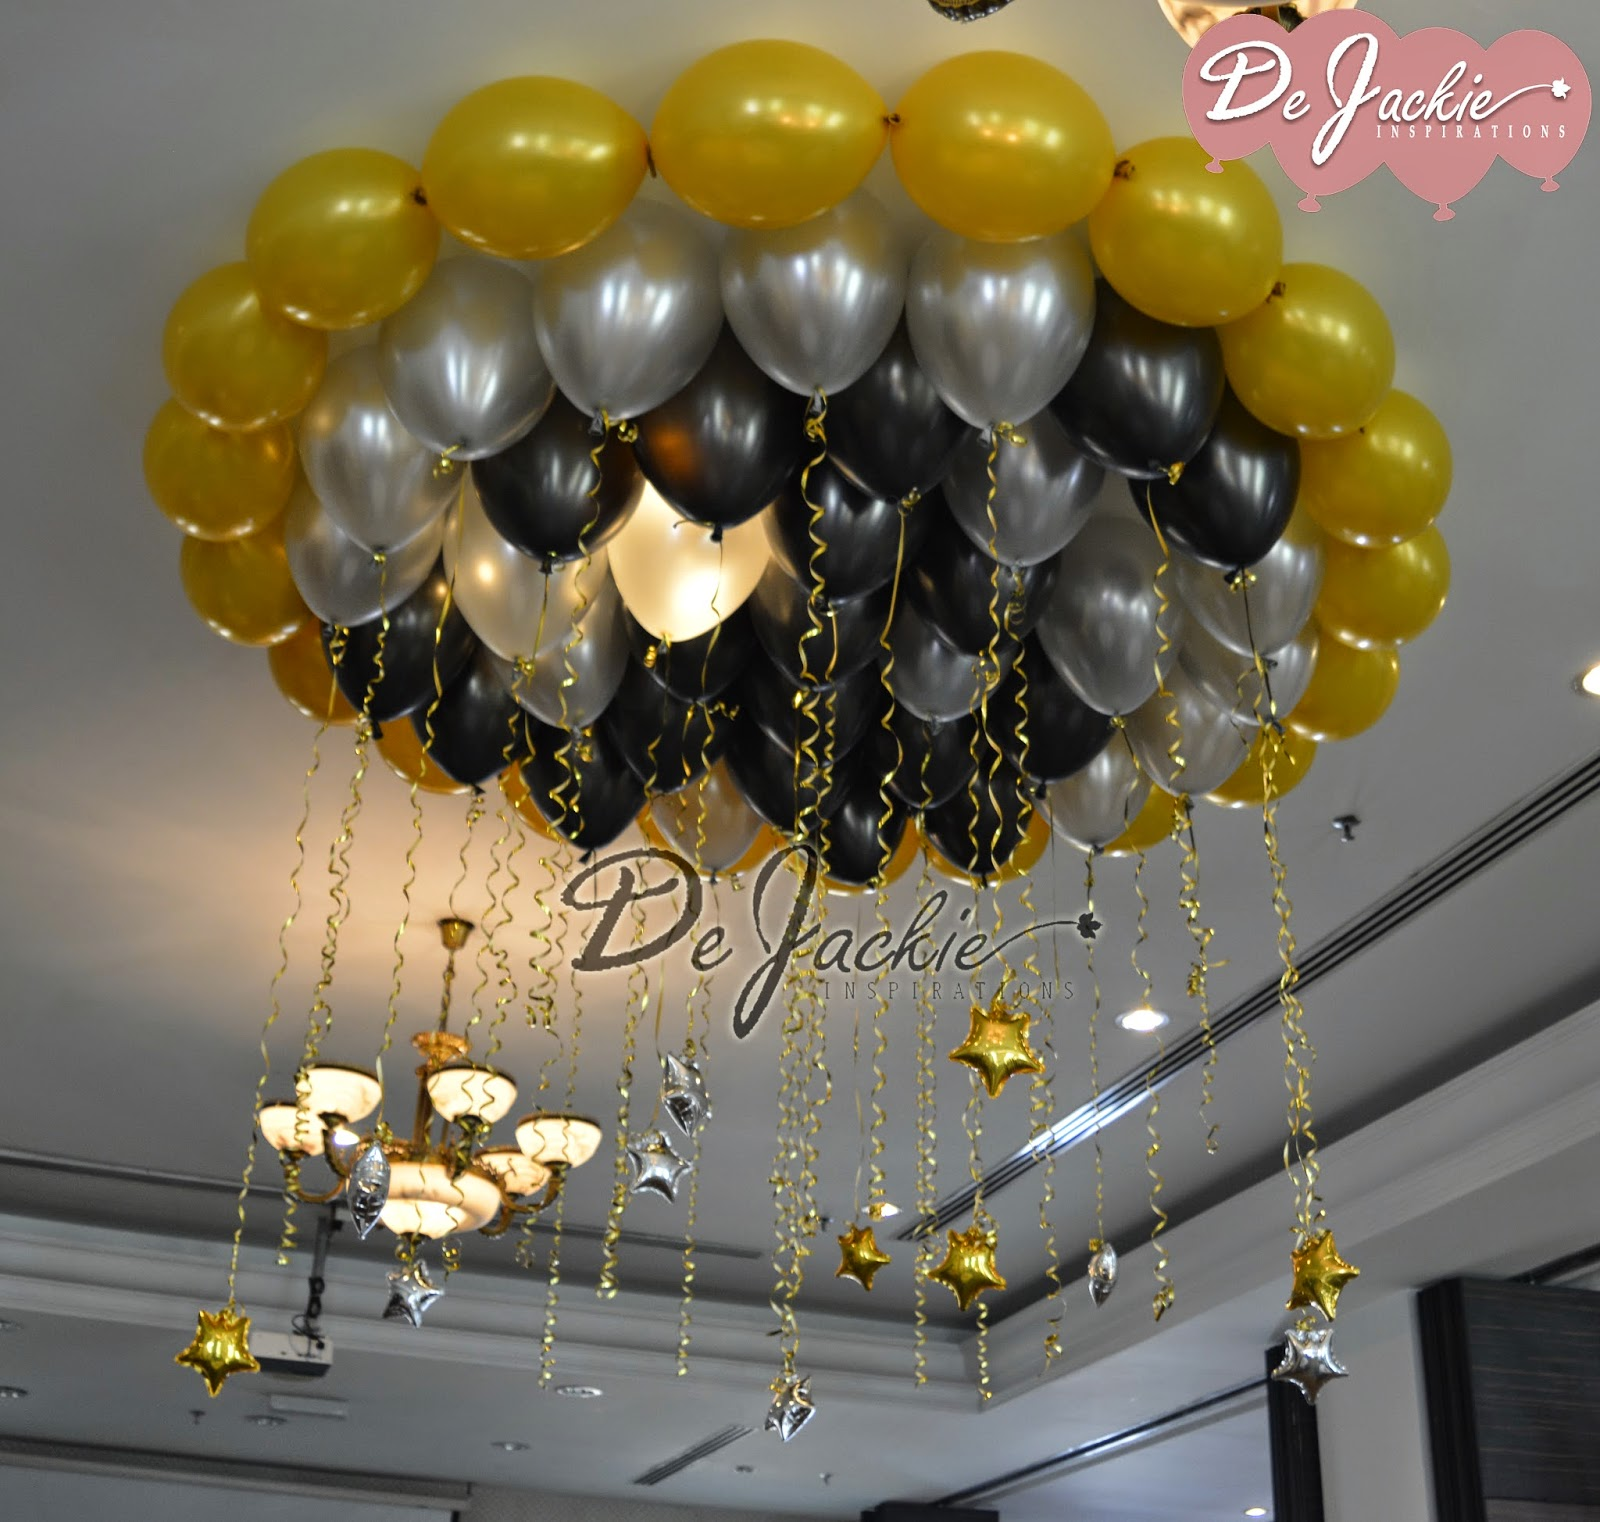 Balloon decorations for weddings birthday parties for Balloon decoration ideas no helium